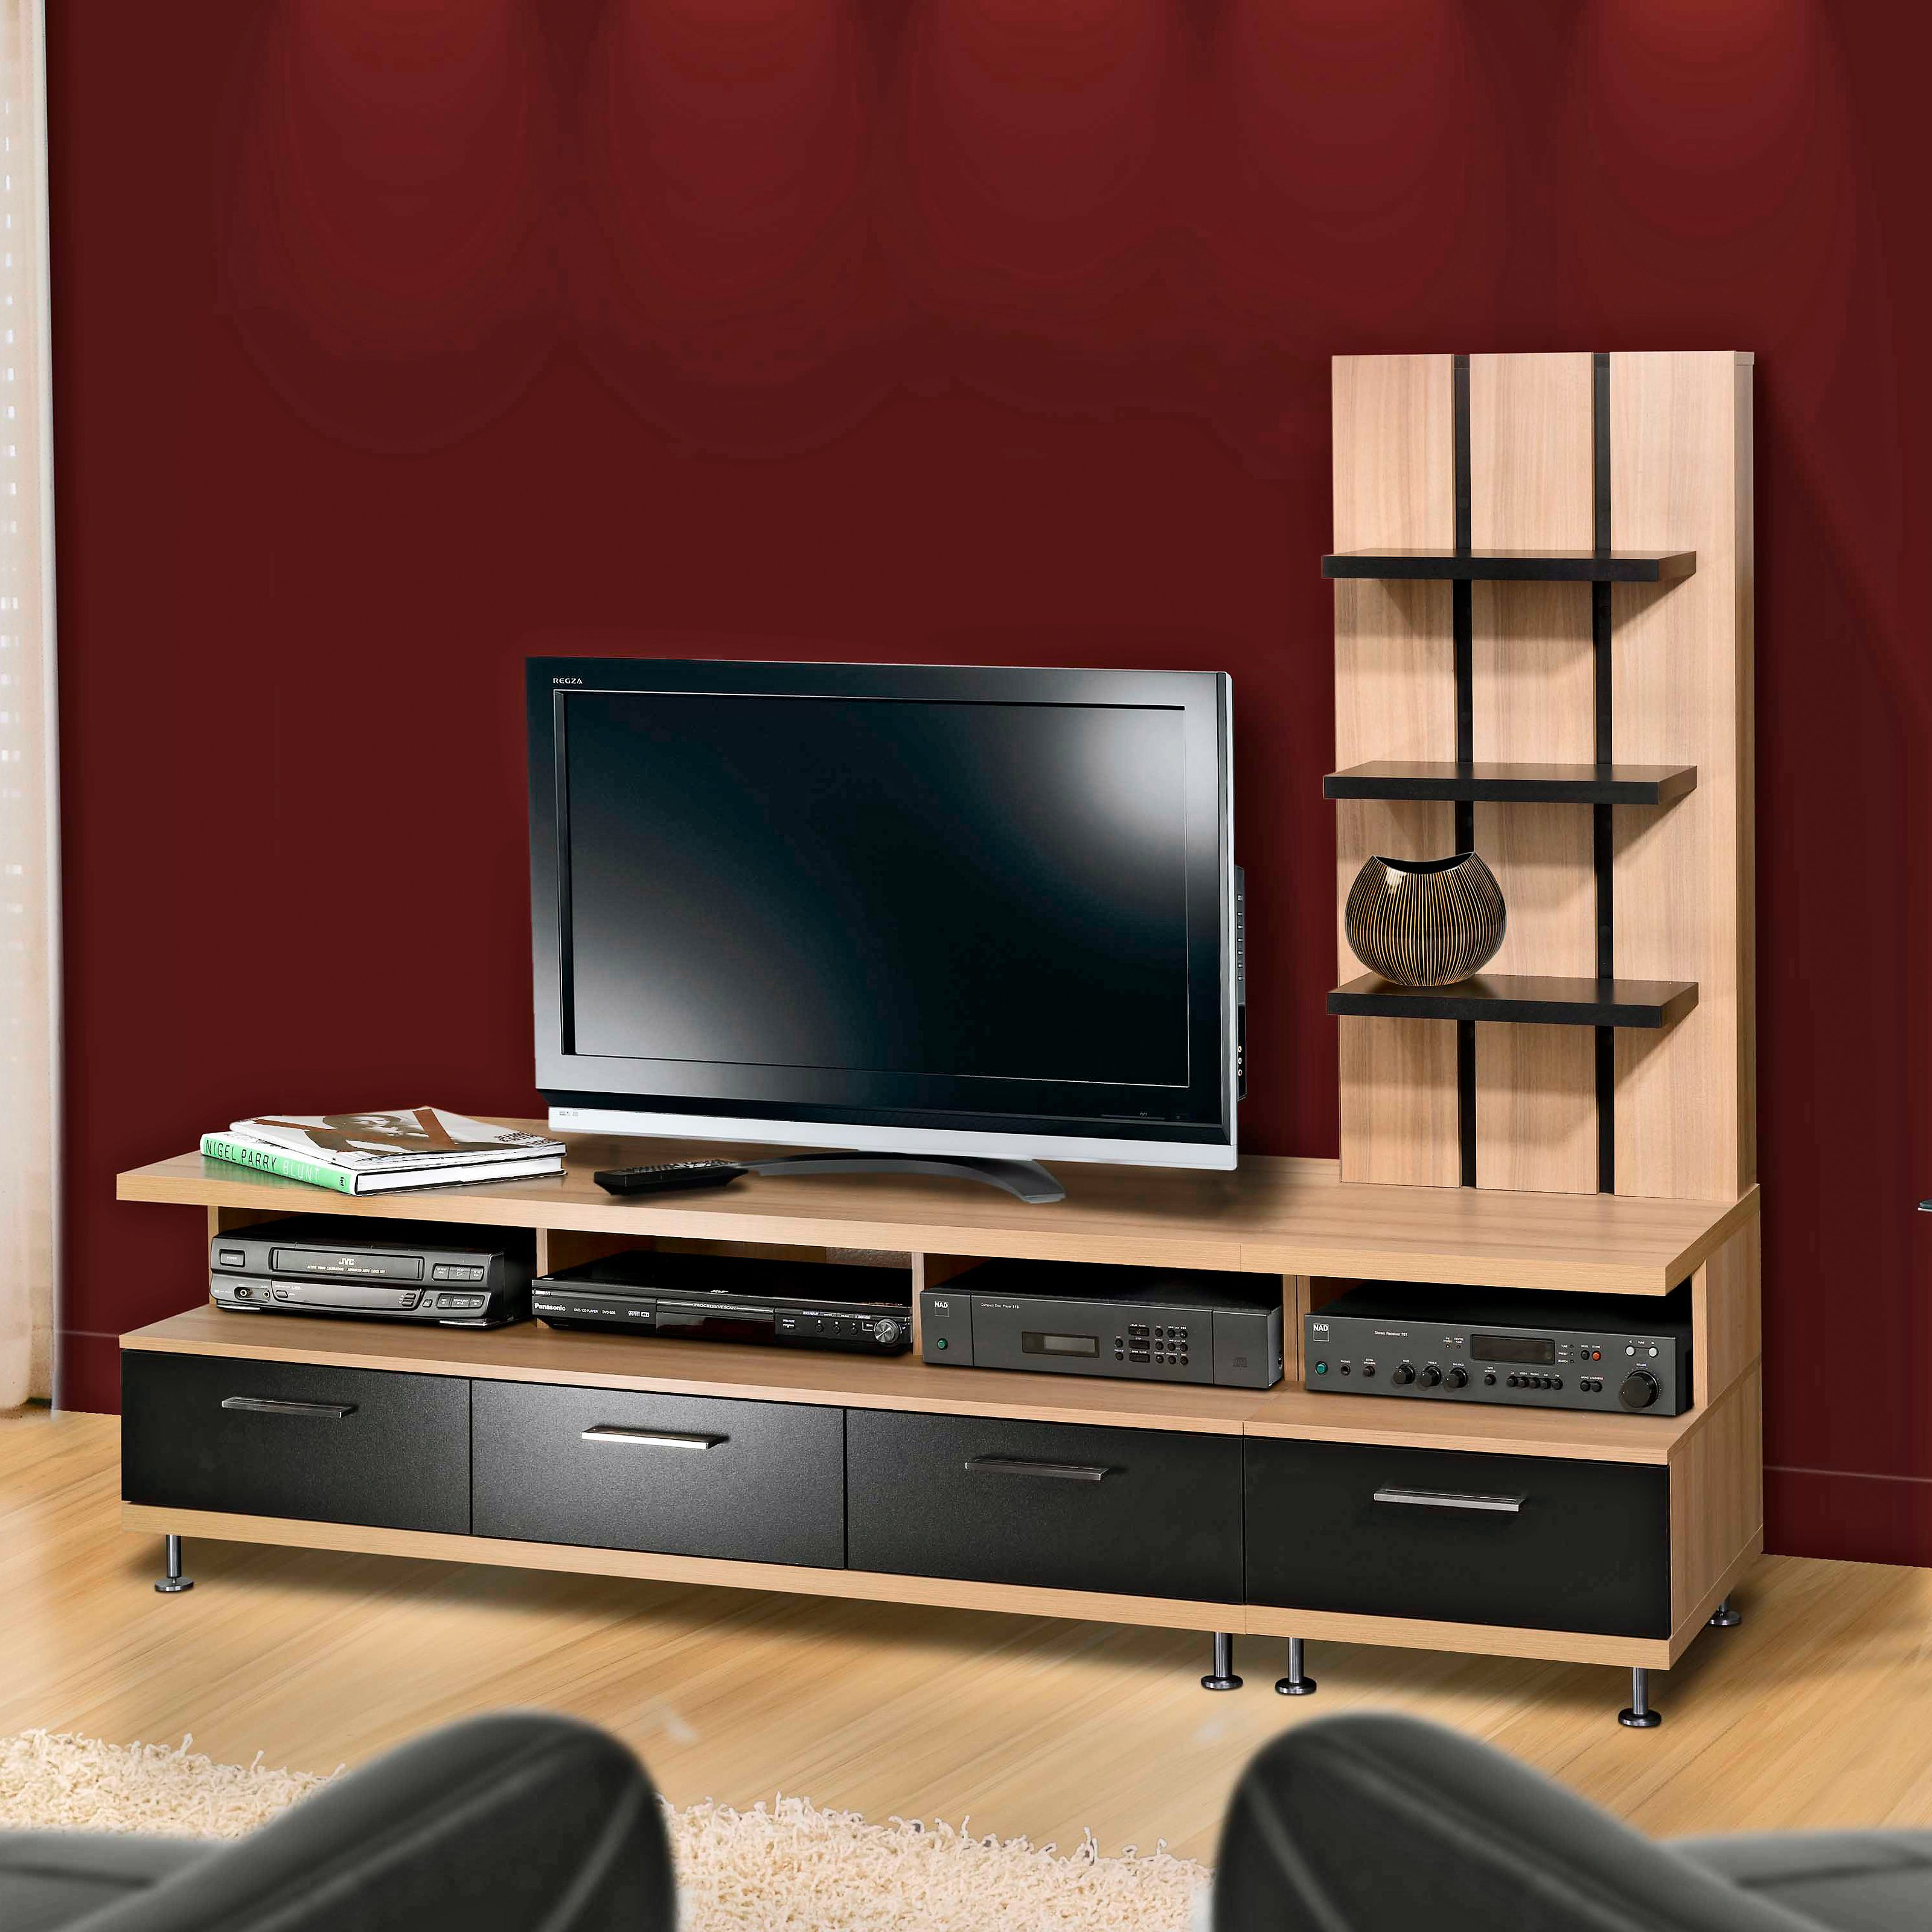 Latest Wooden Tv Stands For Flat Screens With Regard To Best Contemporary Tv Console For Flat Screens — All Contemporary Design (View 11 of 20)